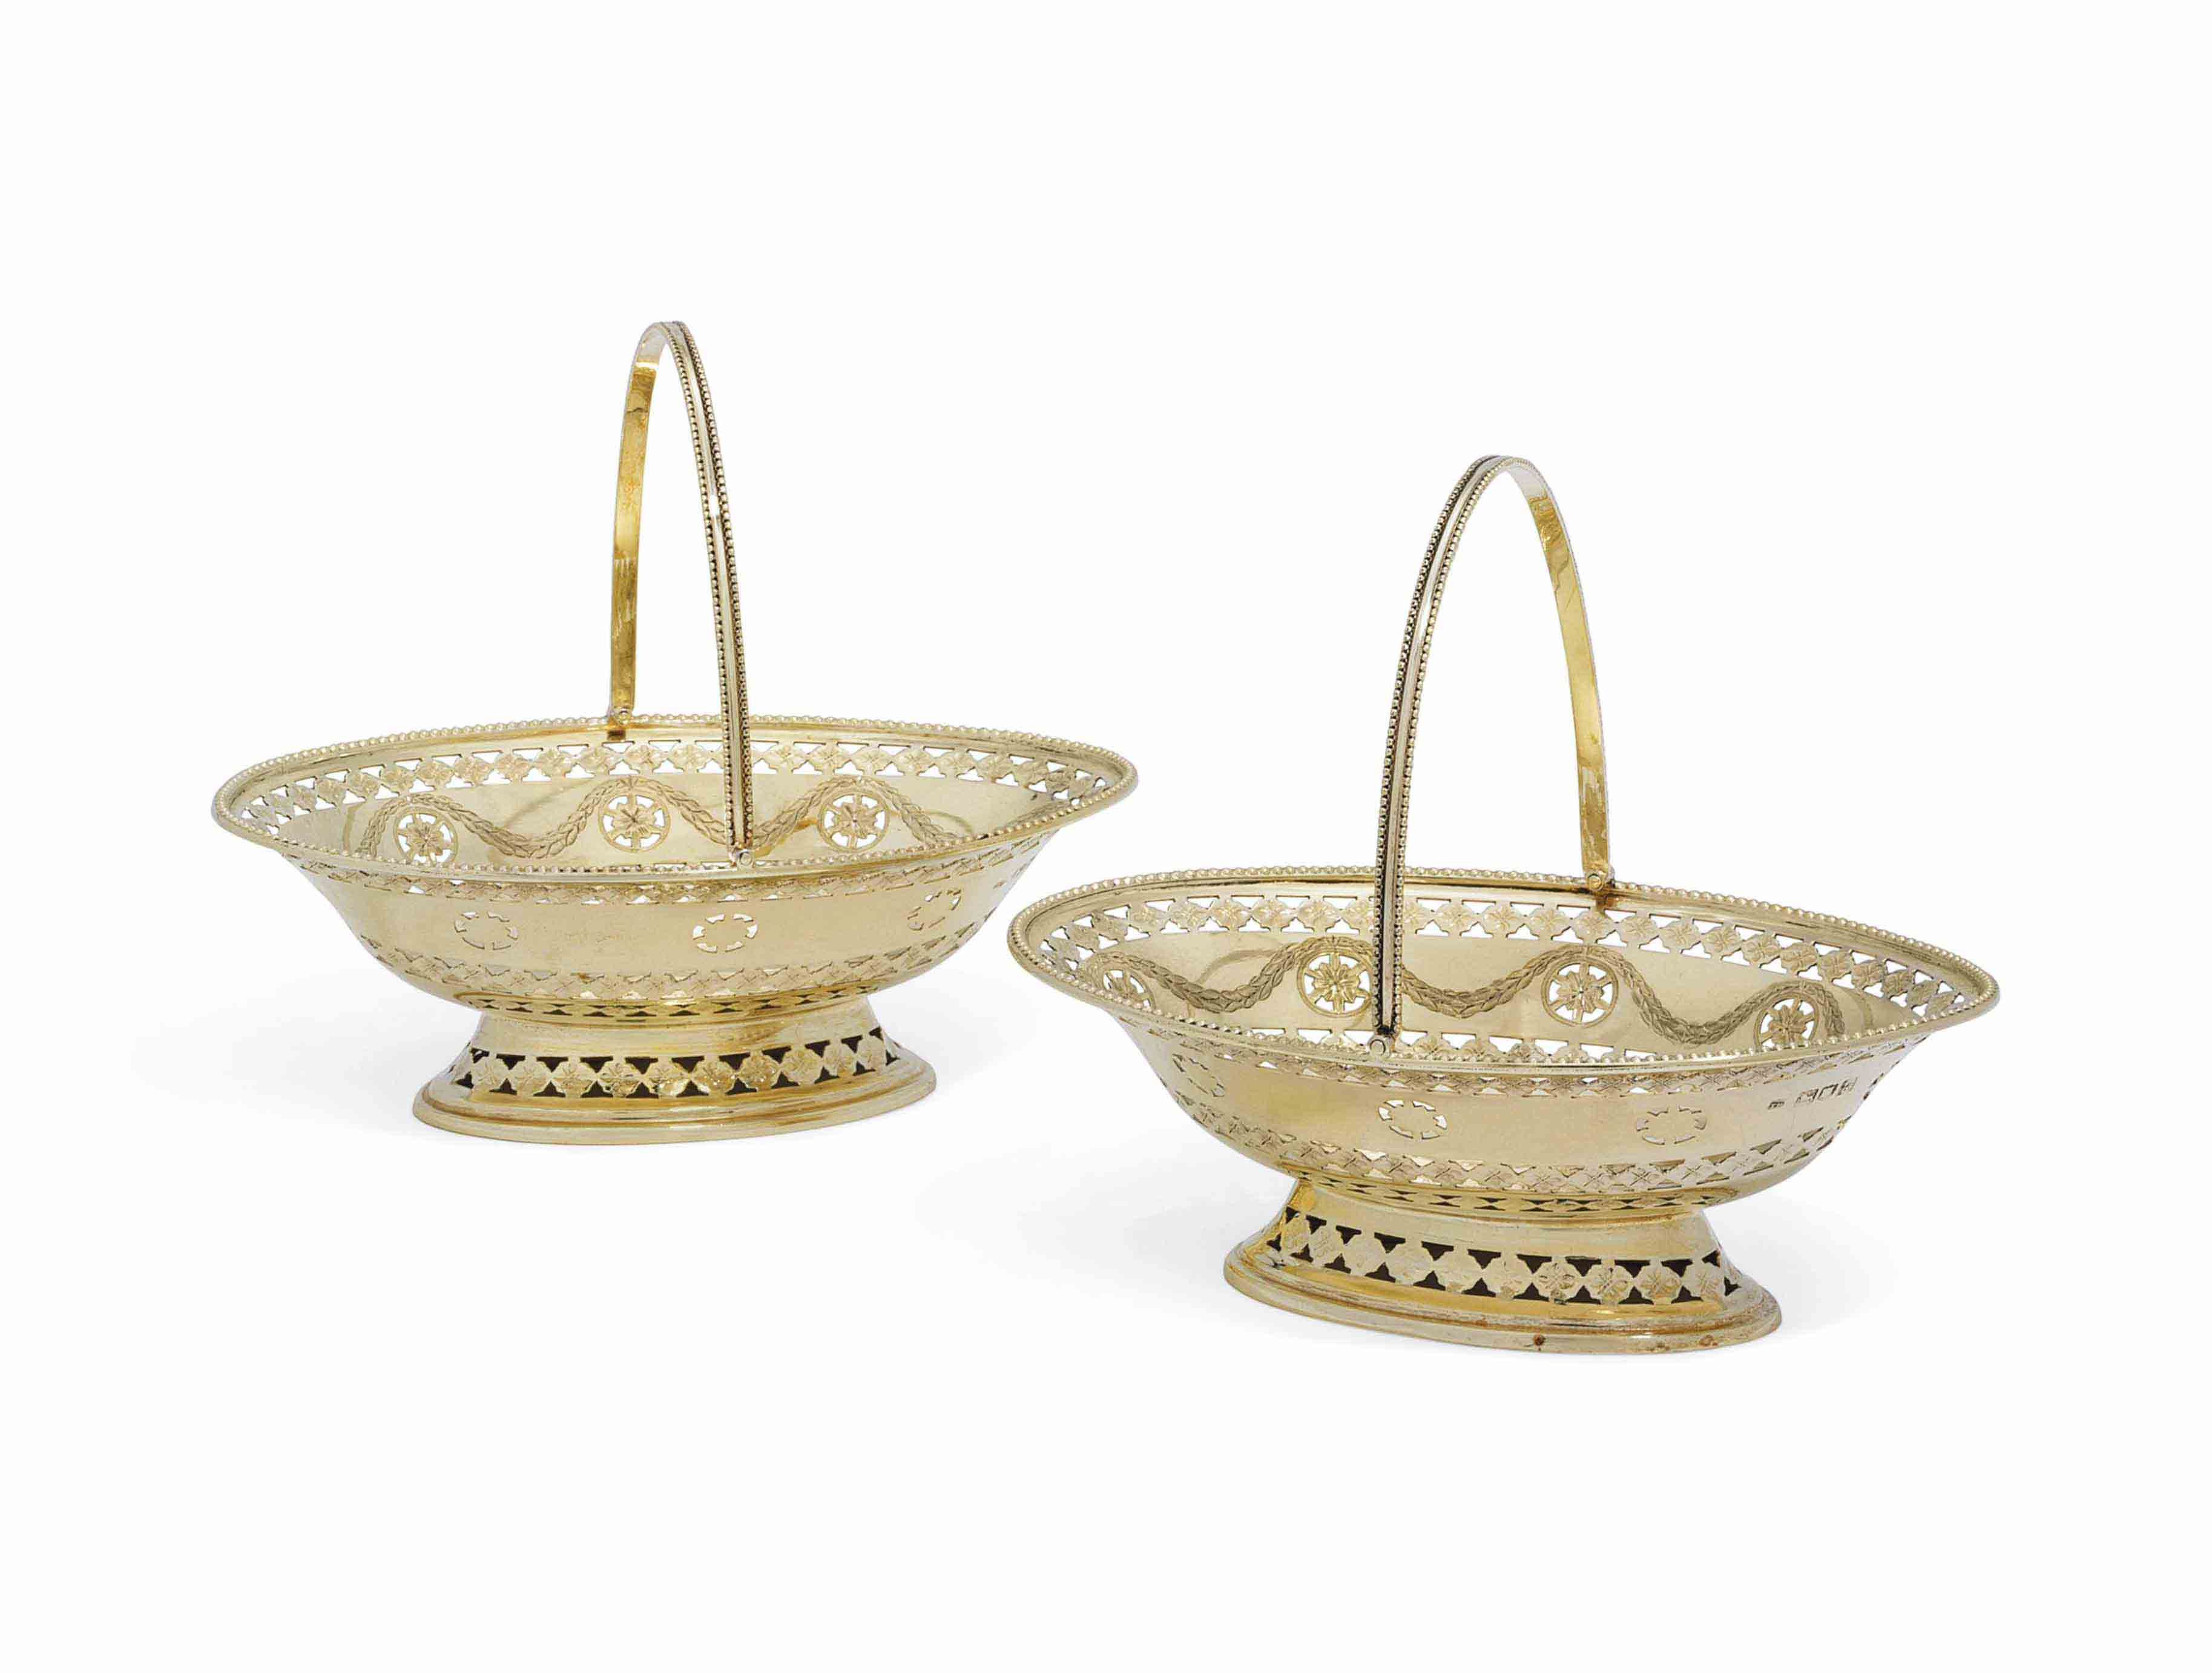 A PAIR OF EDWARD VII SILVER-GILT SWEETMEAT BASKETS